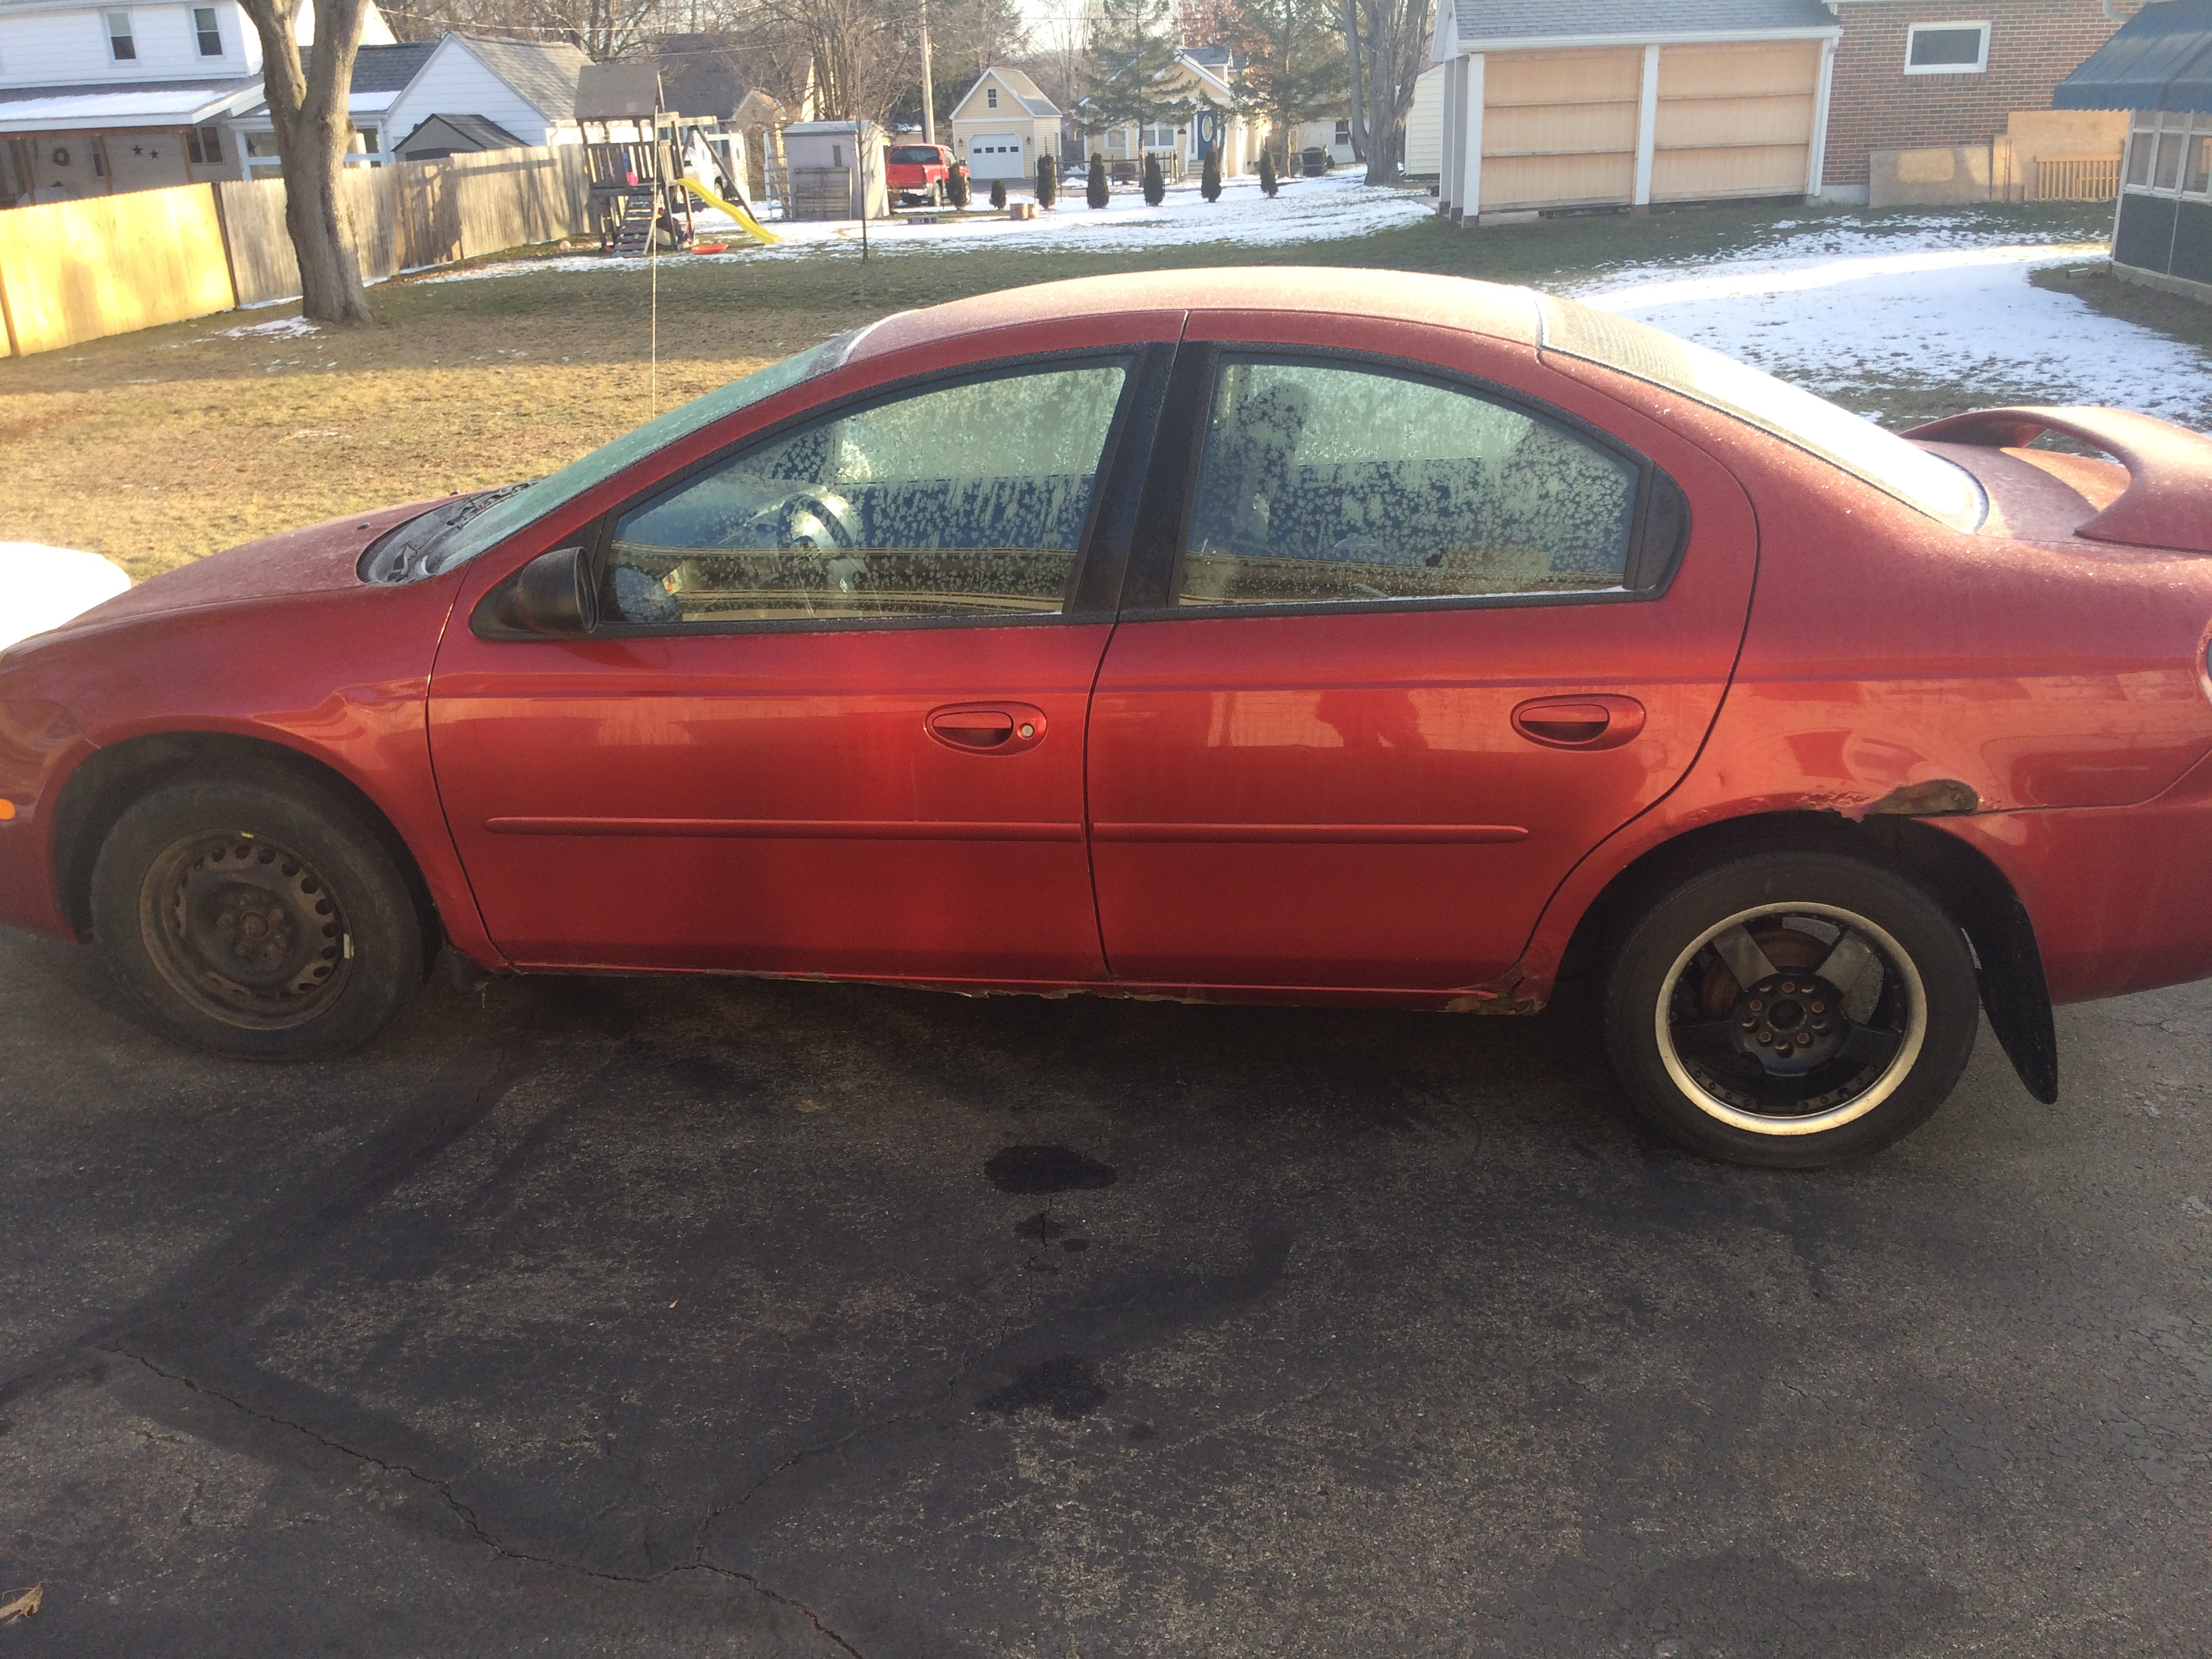 Cash for Cars Longmont, CO | Sell Your Junk Car | The Clunker Junker